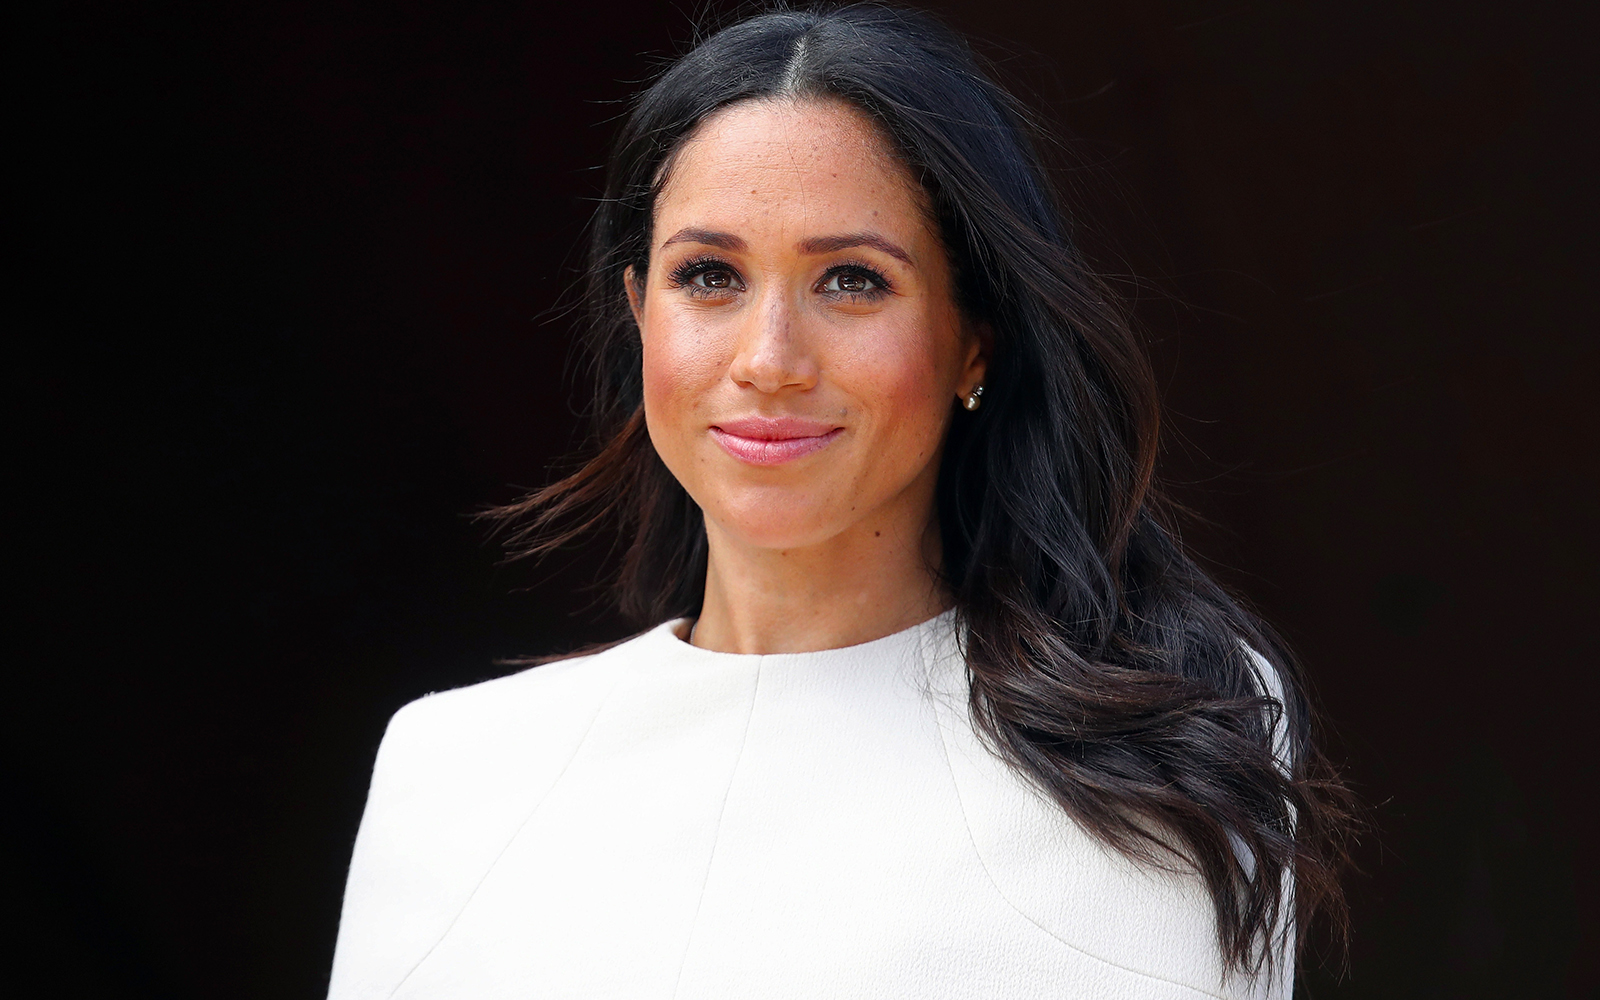 Meghan Markle's Favorite Tinted Moisturizer Has Over 2,400 Near-perfect Nordstrom Reviews